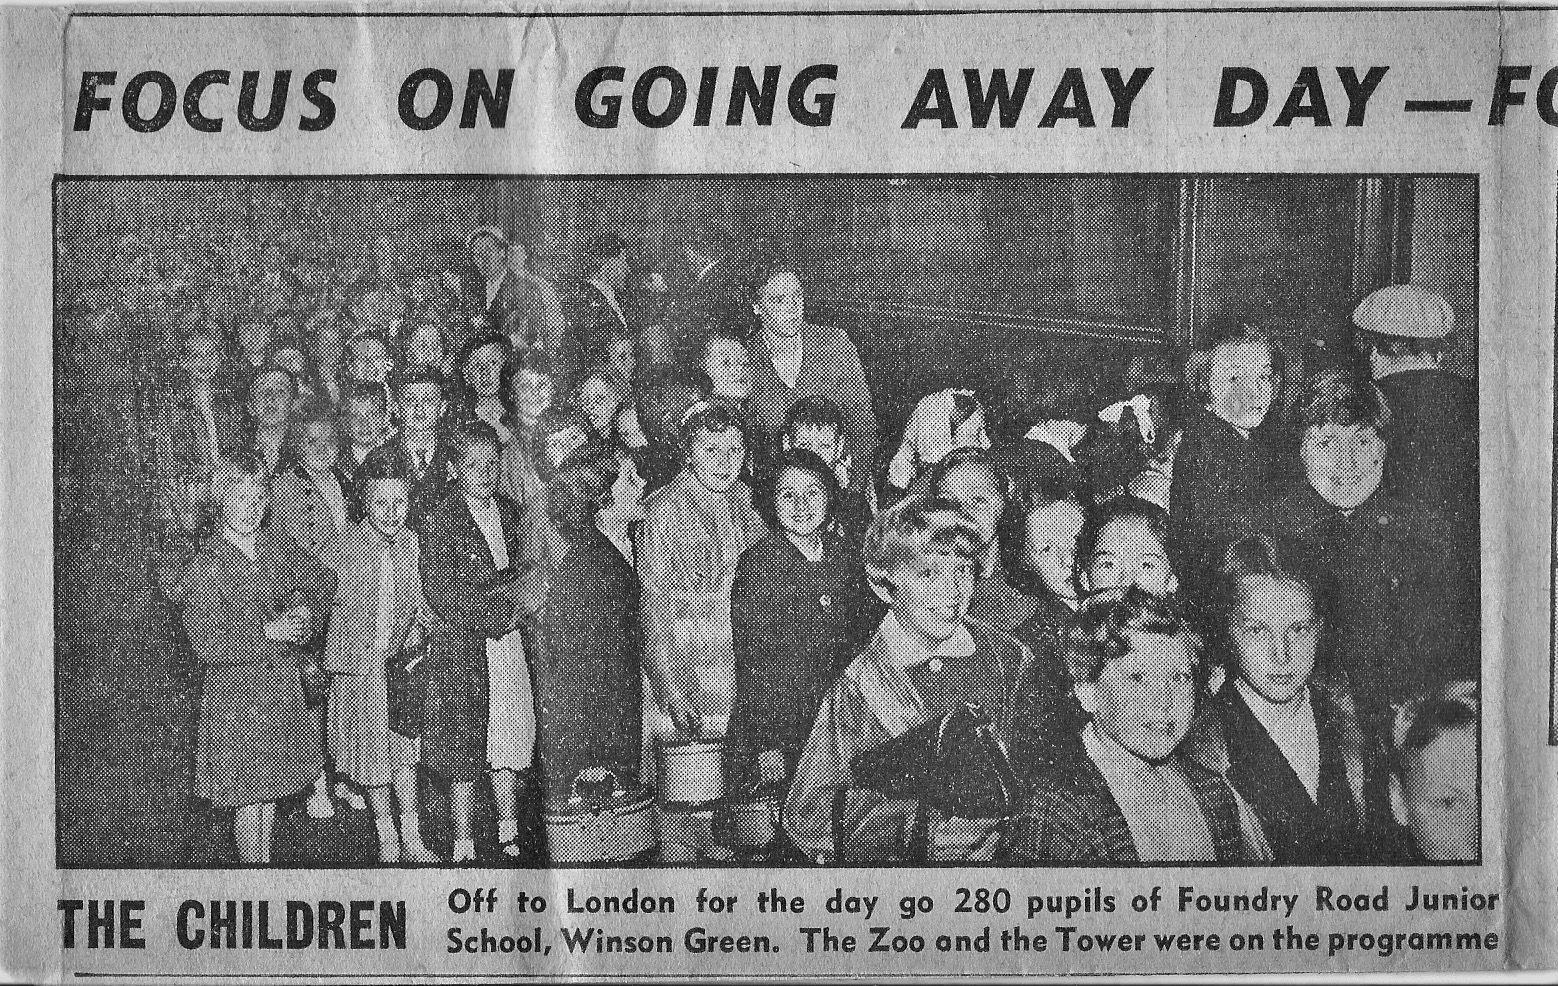 I HAVE JUST FOUND AN OLD NEWSPAPER CLIPPING OF A FOUNDRY ROAD SCHOOL TRIP TO LONDON DATED FRIDAY JUNE 20TH 1958. THOUGHT IT MIGHT BE OF INTEREST TO EX PUPILS WHO MAY OR MAY NOT HAVE BEEN ON THE TRIP AT THAT TIME OR COULD RECOGNISE THEMSELVES OR ANY OTHERS ON IT. THANKS TO AL HUGHES